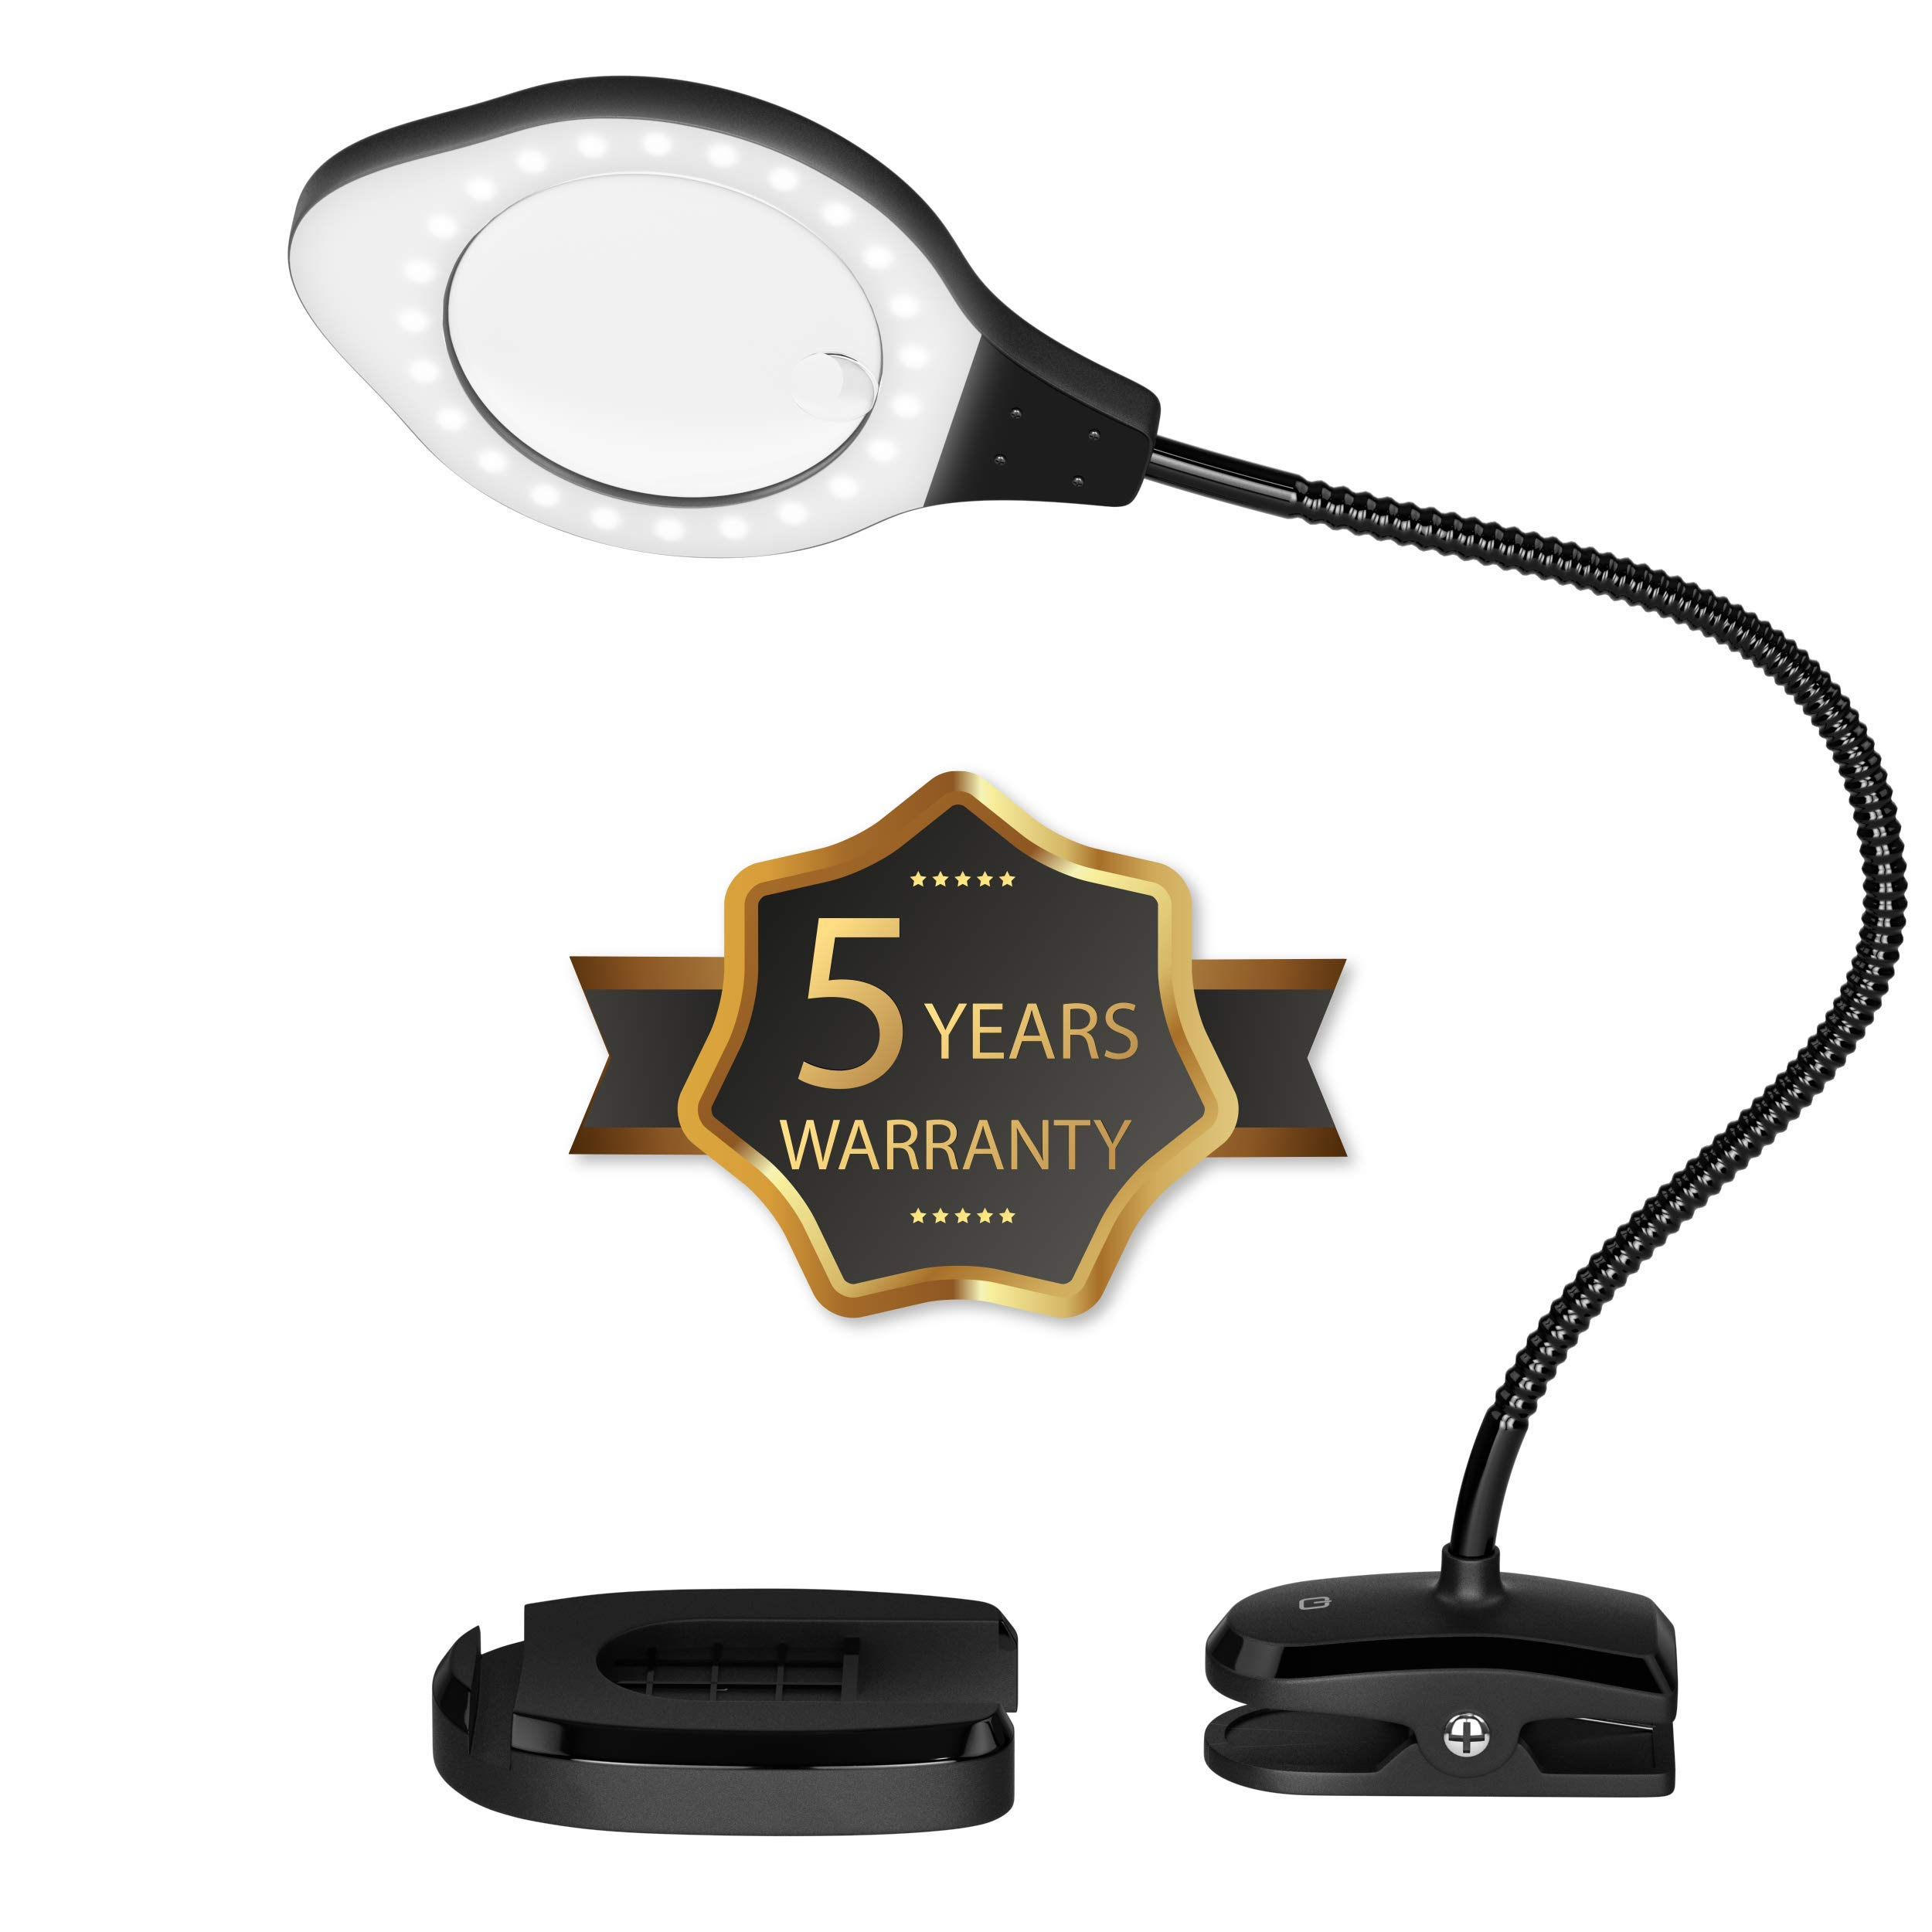 2-4X Magnifying Lamp with LED Light, 5 Year Warranty 3 Brightness Settings, Adjustable Goose Neck, Weighted Bottom for Stability. Perfect for Reading, Crafts,Work